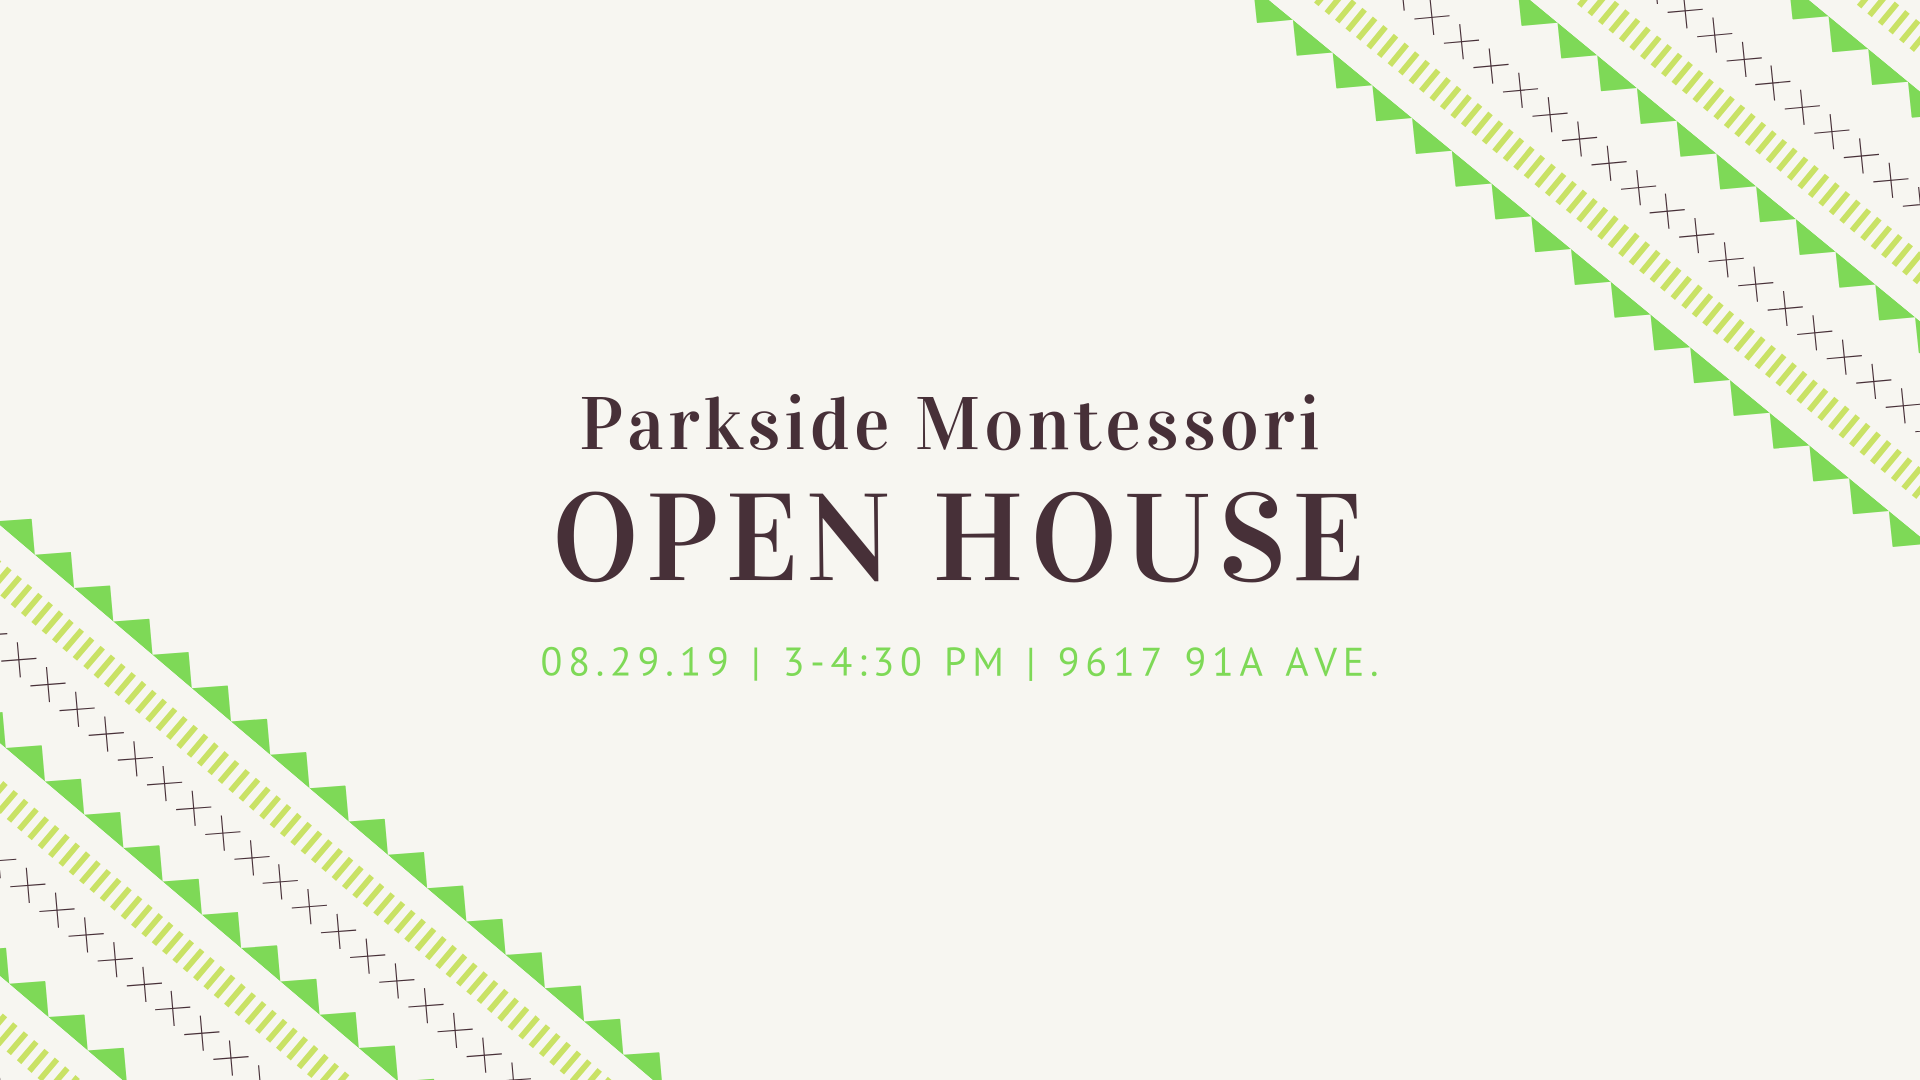 Parkside Montessori OPEN HOUSE.png